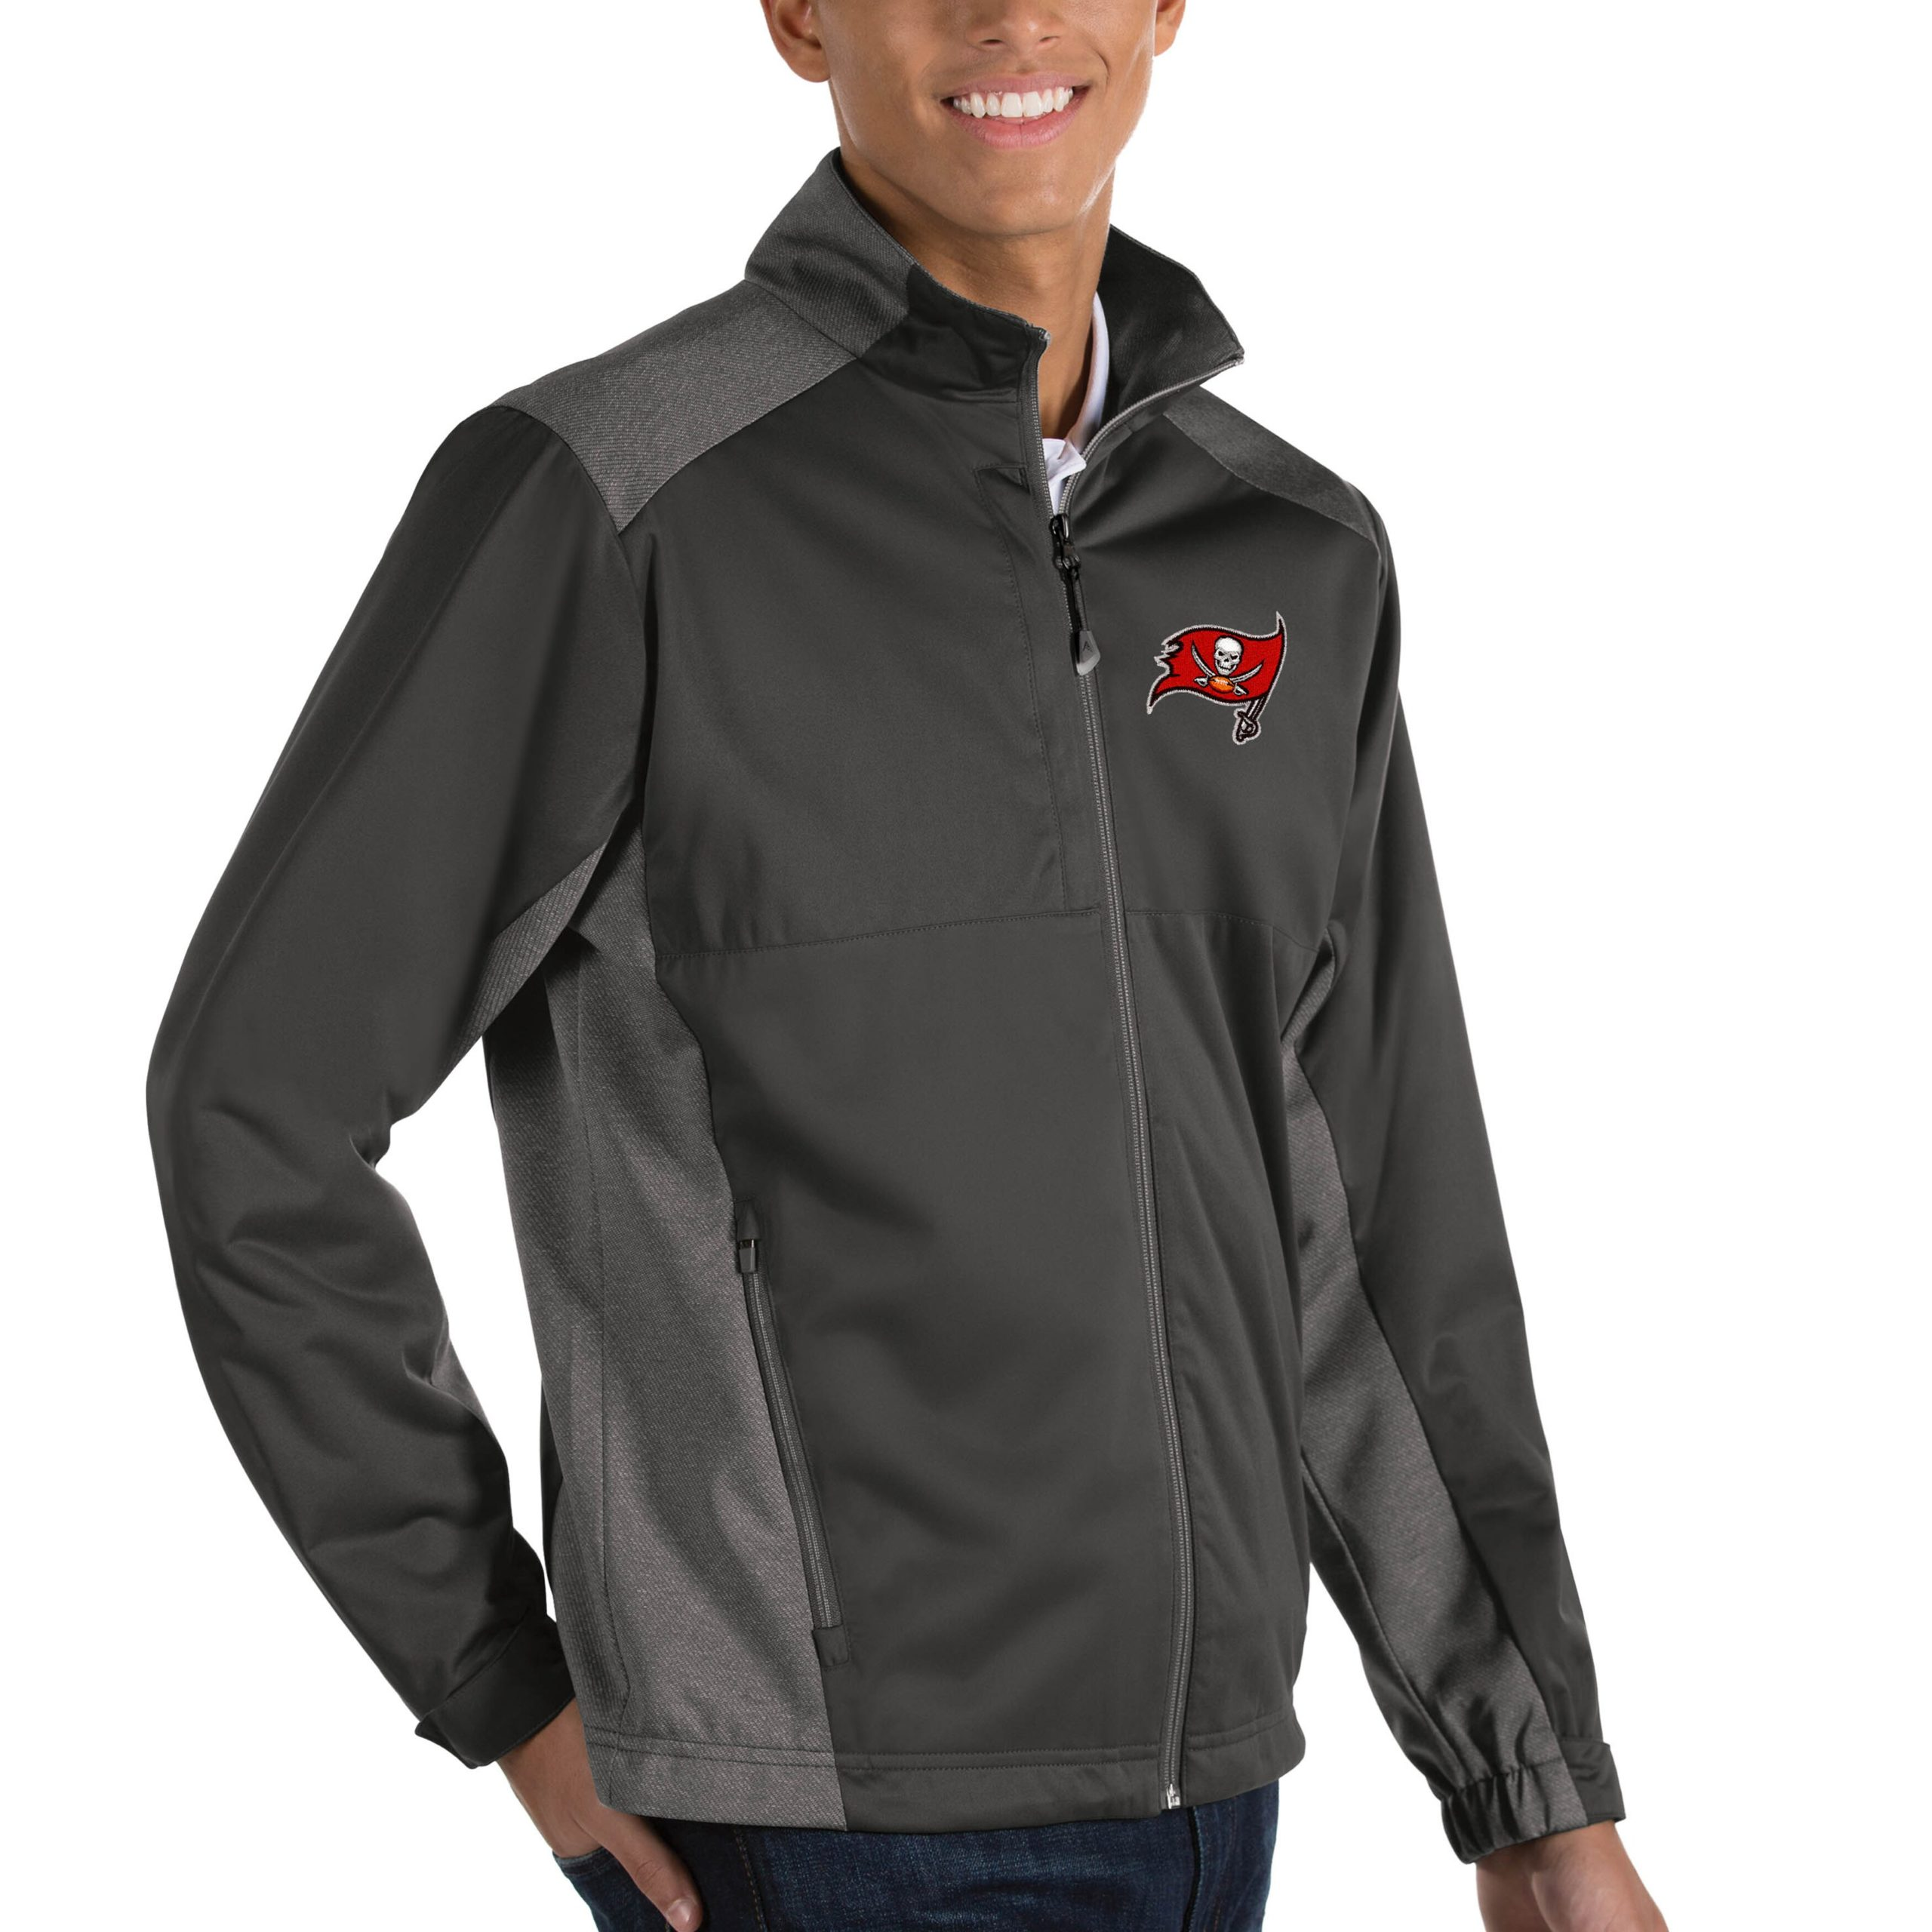 Tampa Bay Buccaneers Antigua Revolve Big & Tall Full-Zip Jacket - Heather Charcoal